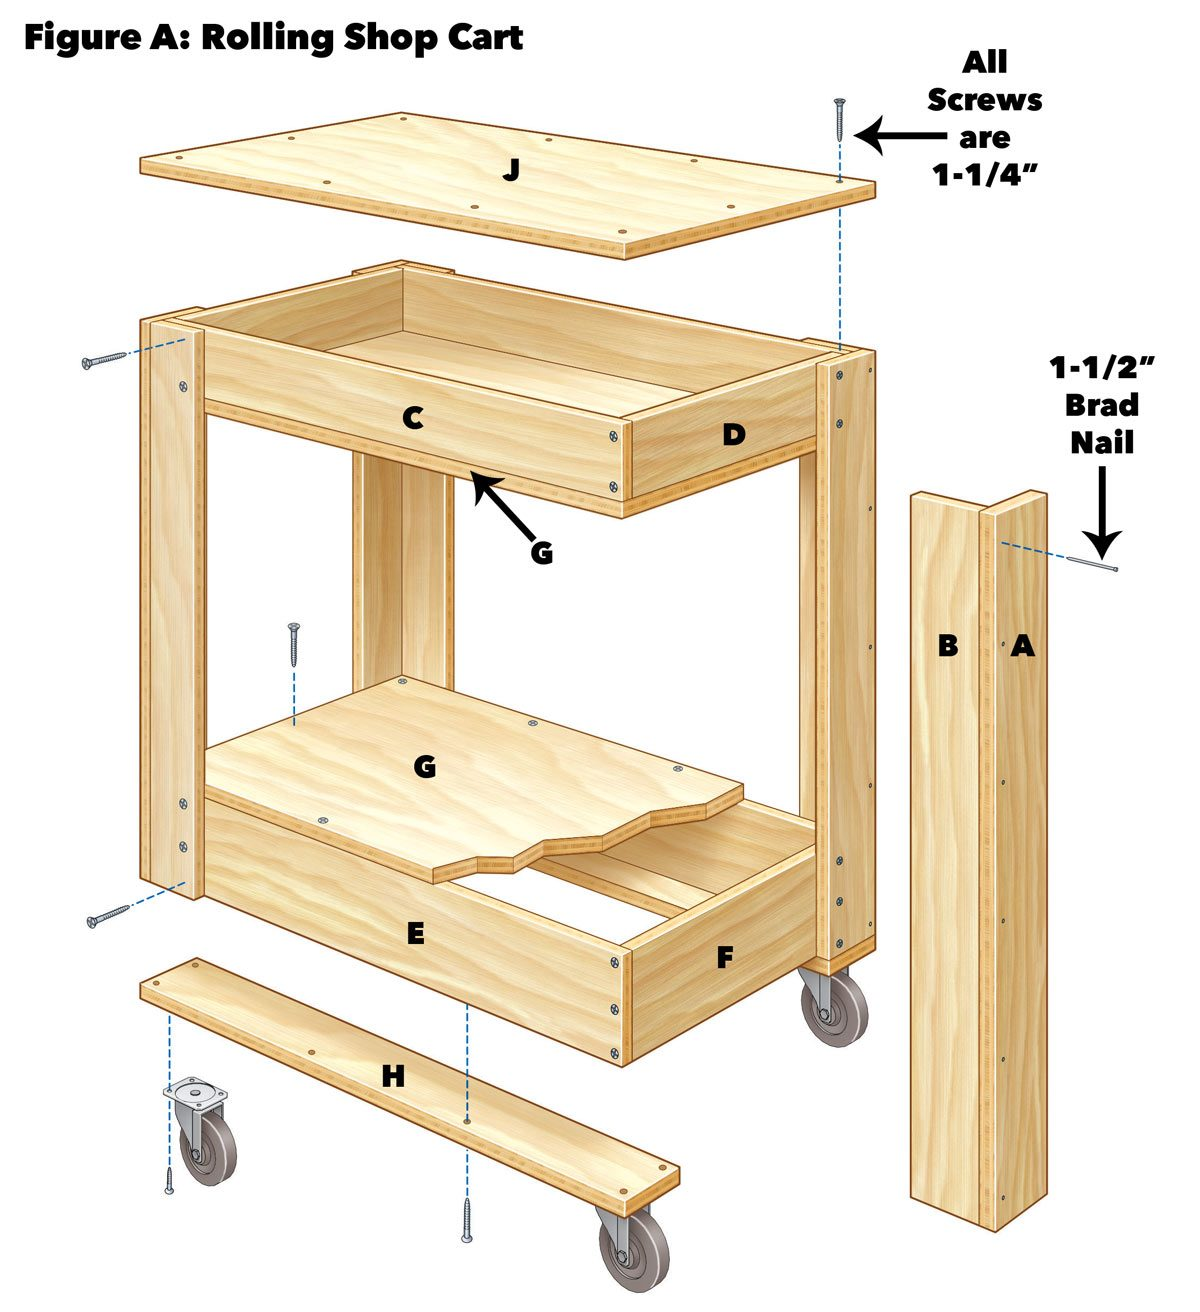 39 Ingenious Diagrams For Your Home And Garden Projects: Rolling Tool Box Cart Plans